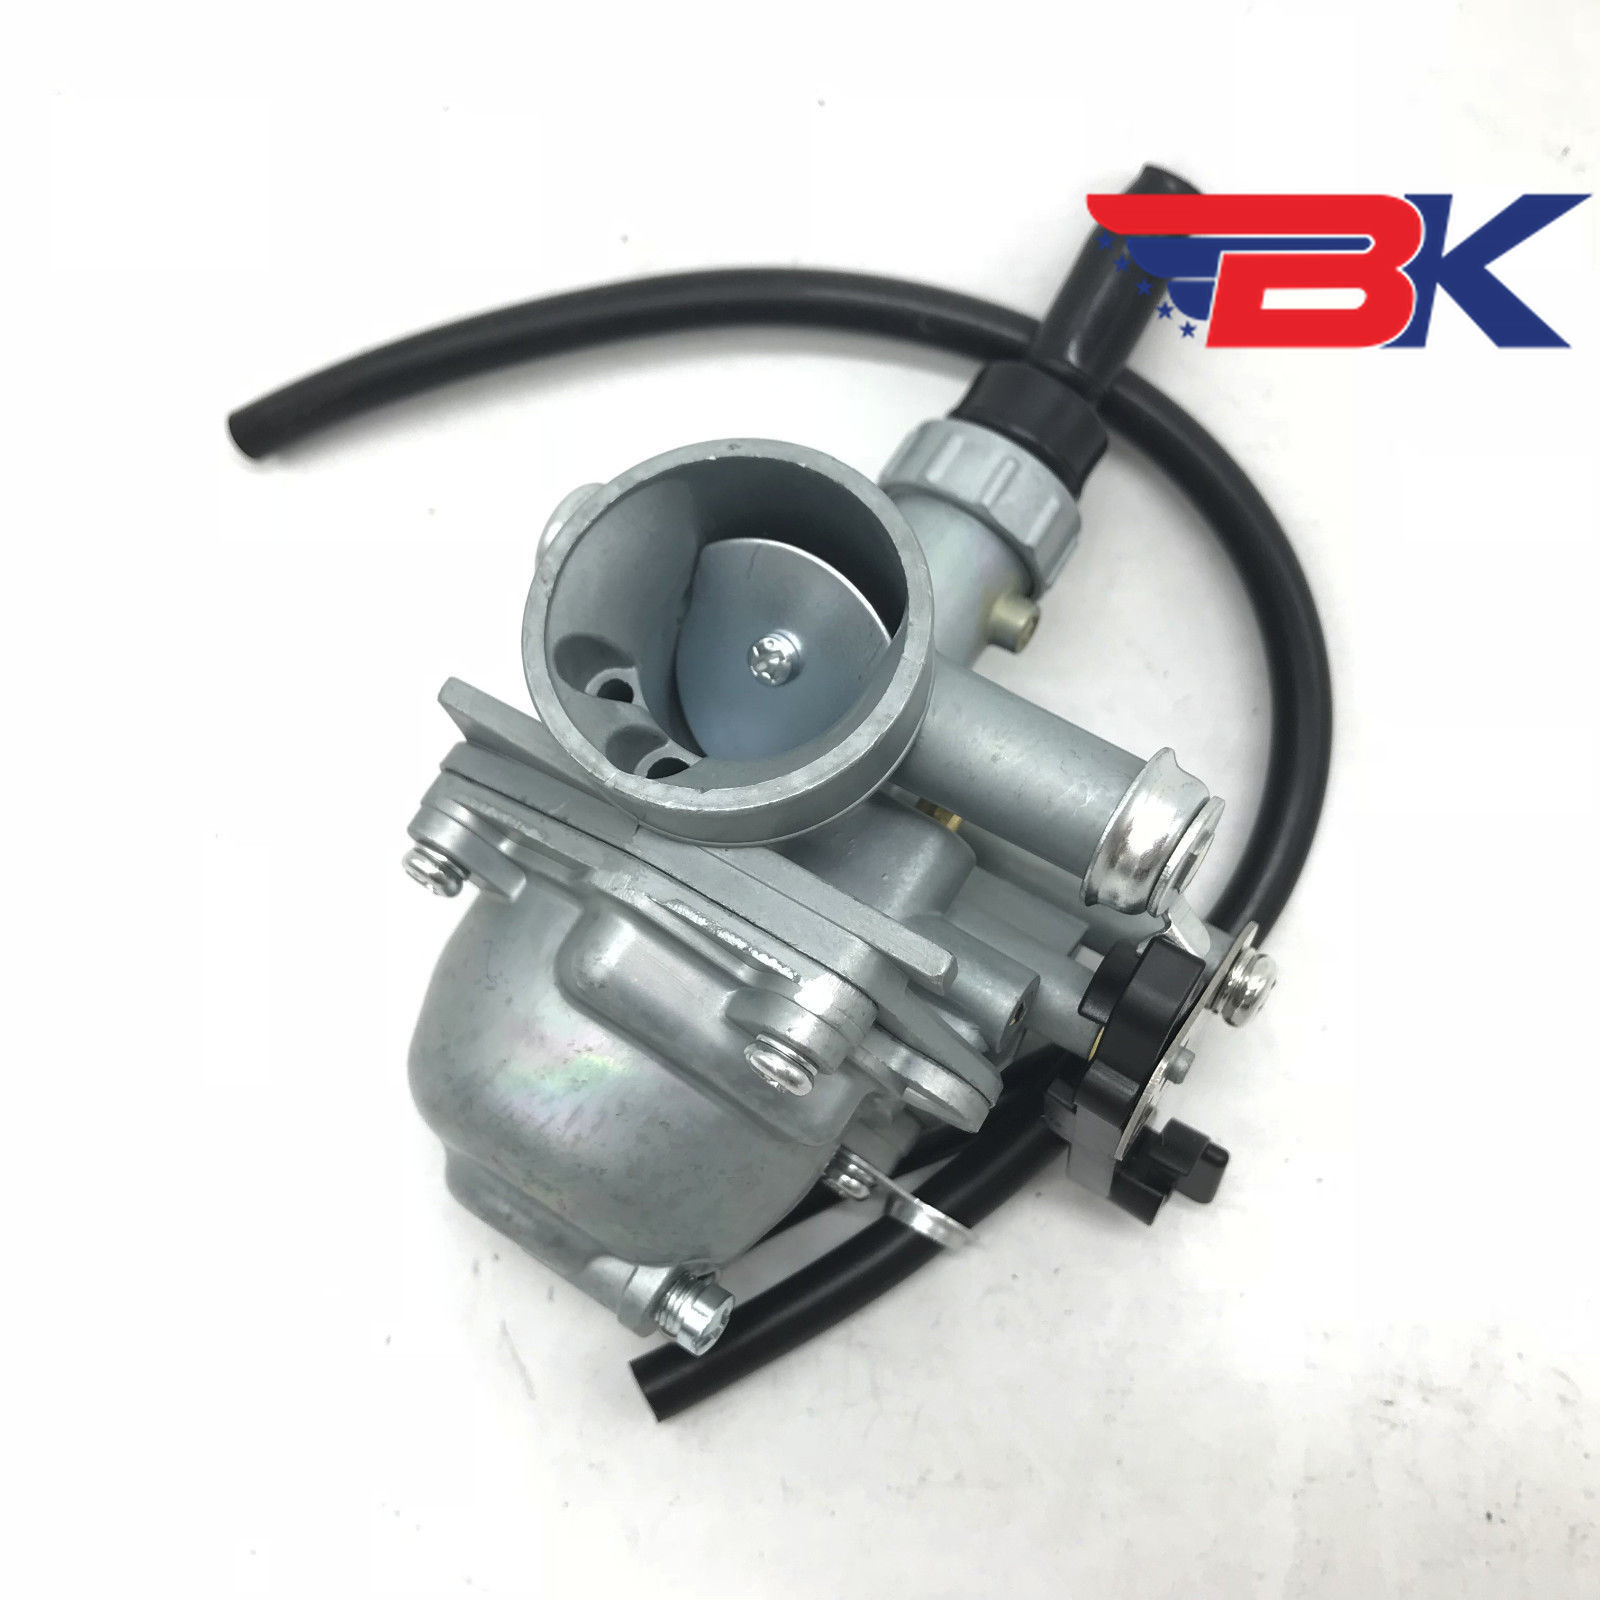 Reliable Vm16 Mikuni Carby 50cc 70cc 110 125cc Pit Dirt Bike Atv Scooter 19mm Z50 Dax Carb Carburetor Atv,rv,boat & Other Vehicle Back To Search Resultsautomobiles & Motorcycles